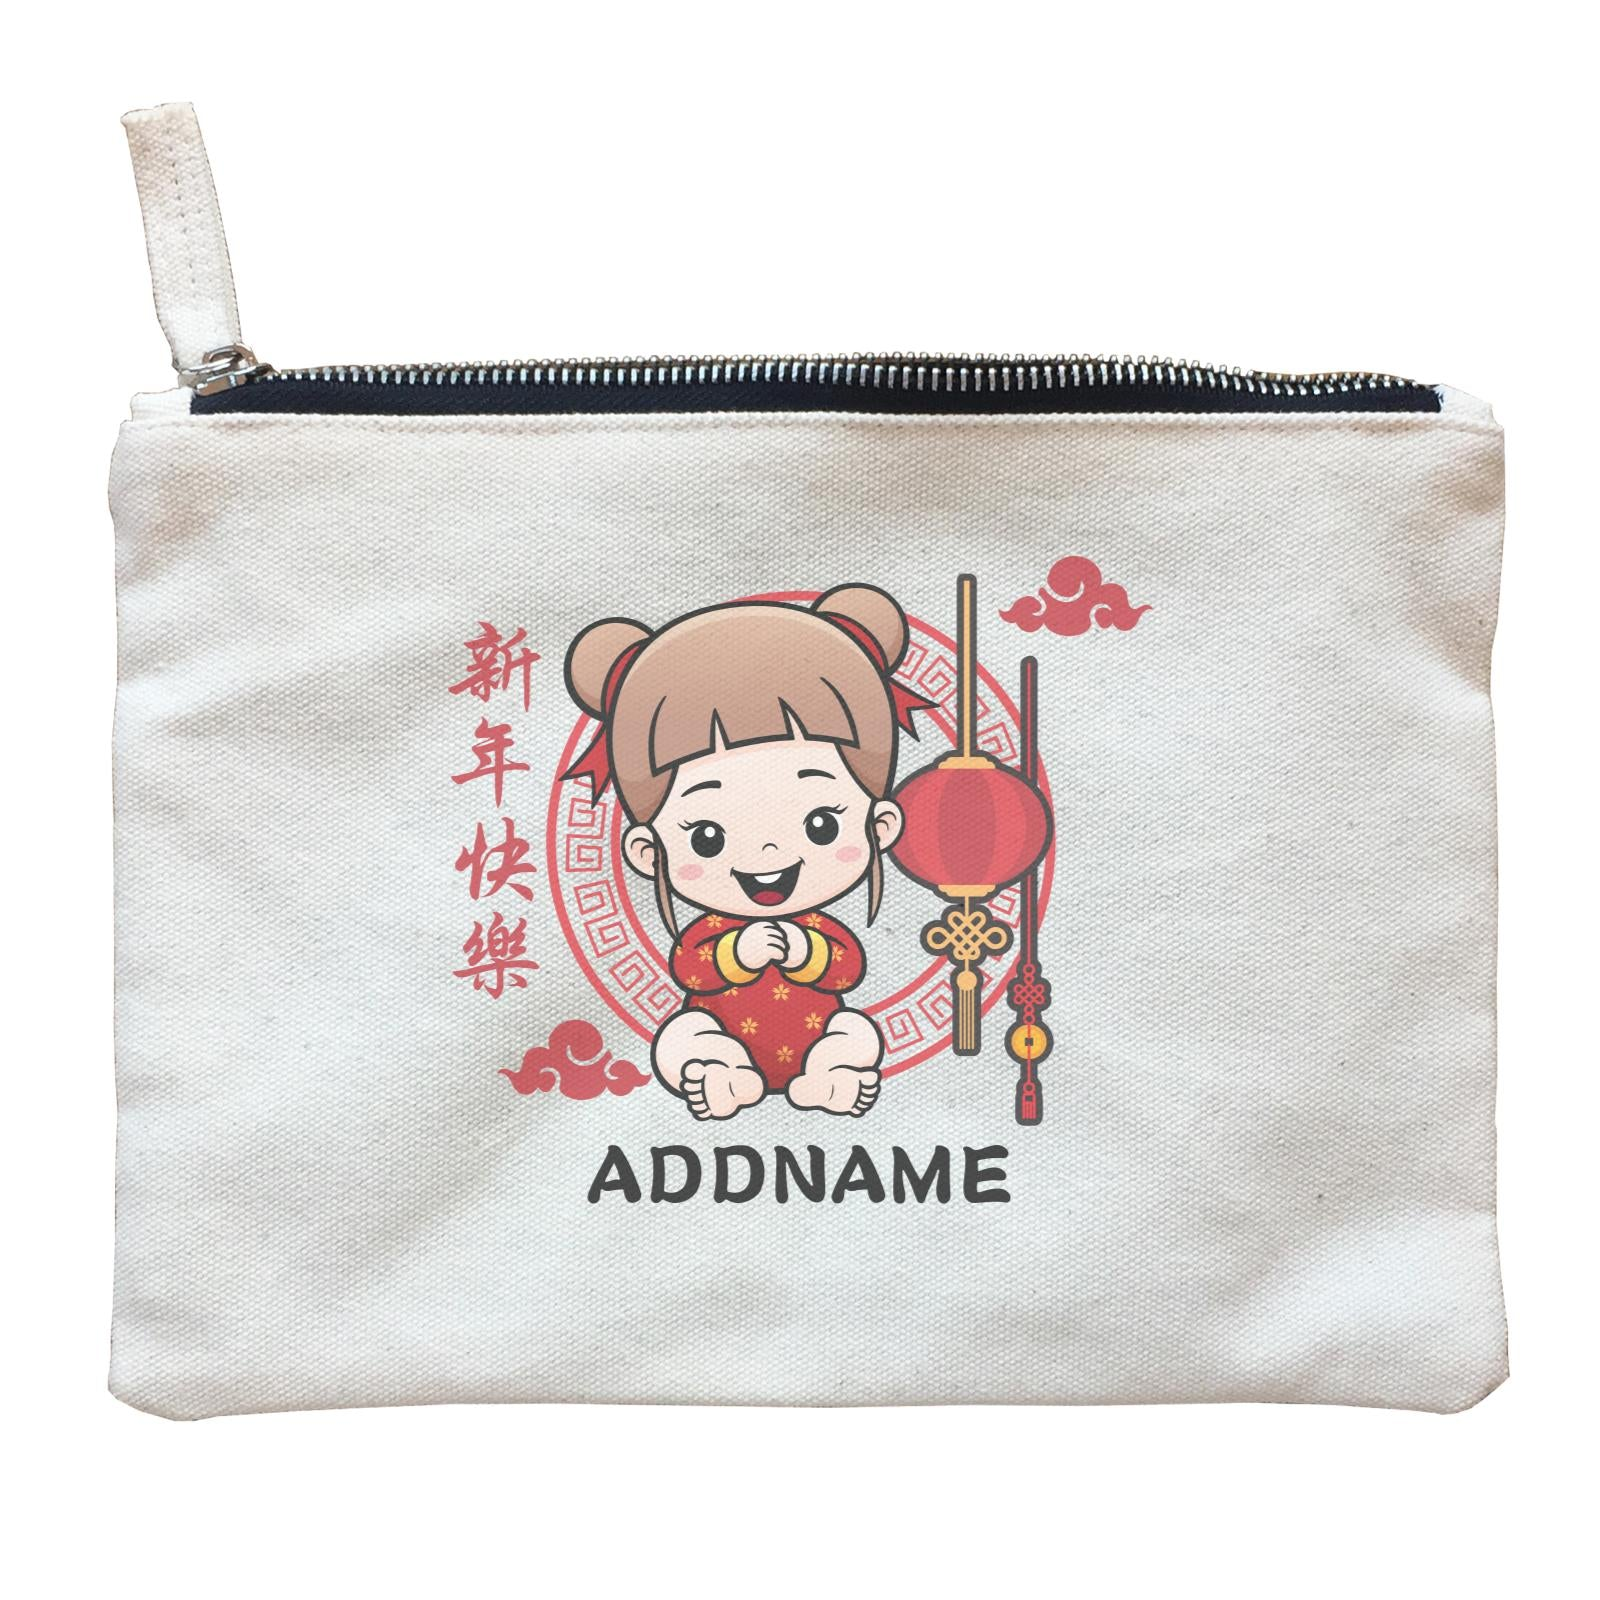 Chinese New Year Fancy Baby Girl with Lantern Zipper Pouch